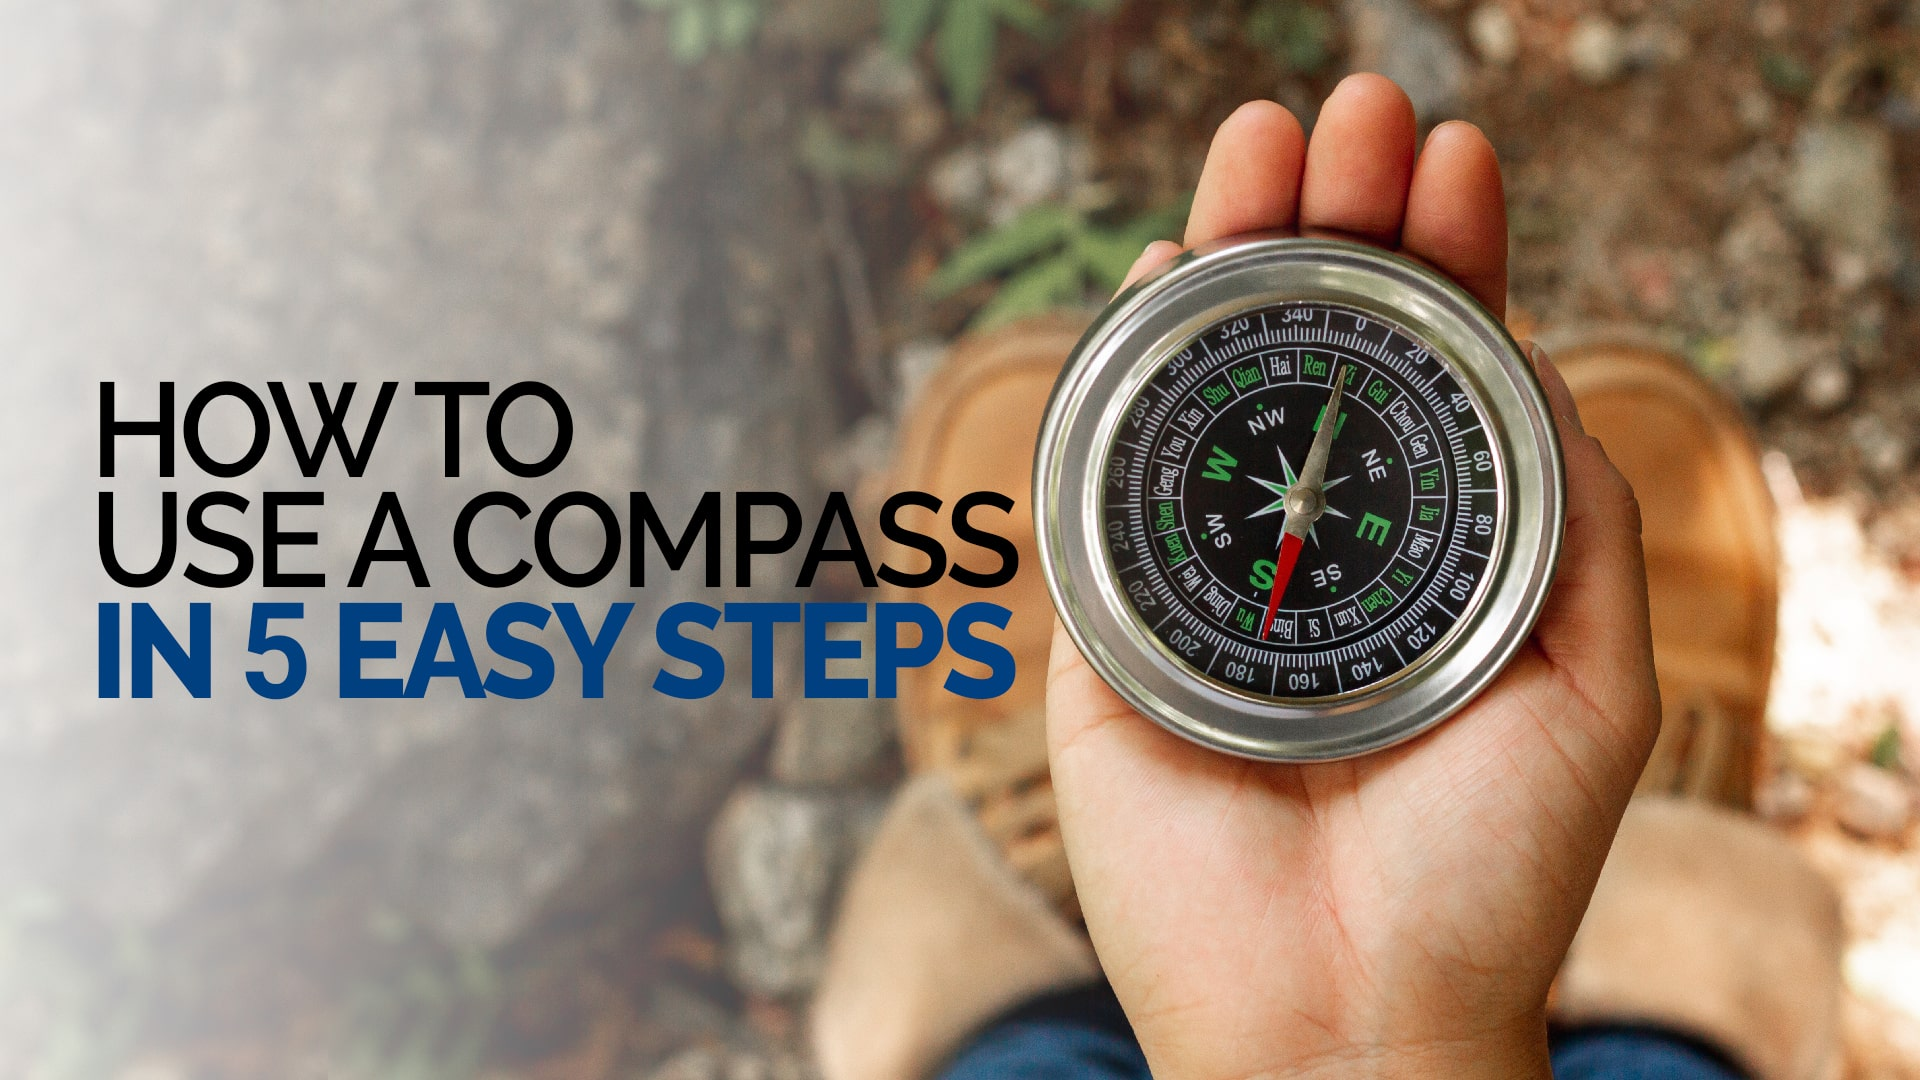 How to use a compass in 5 easy steps